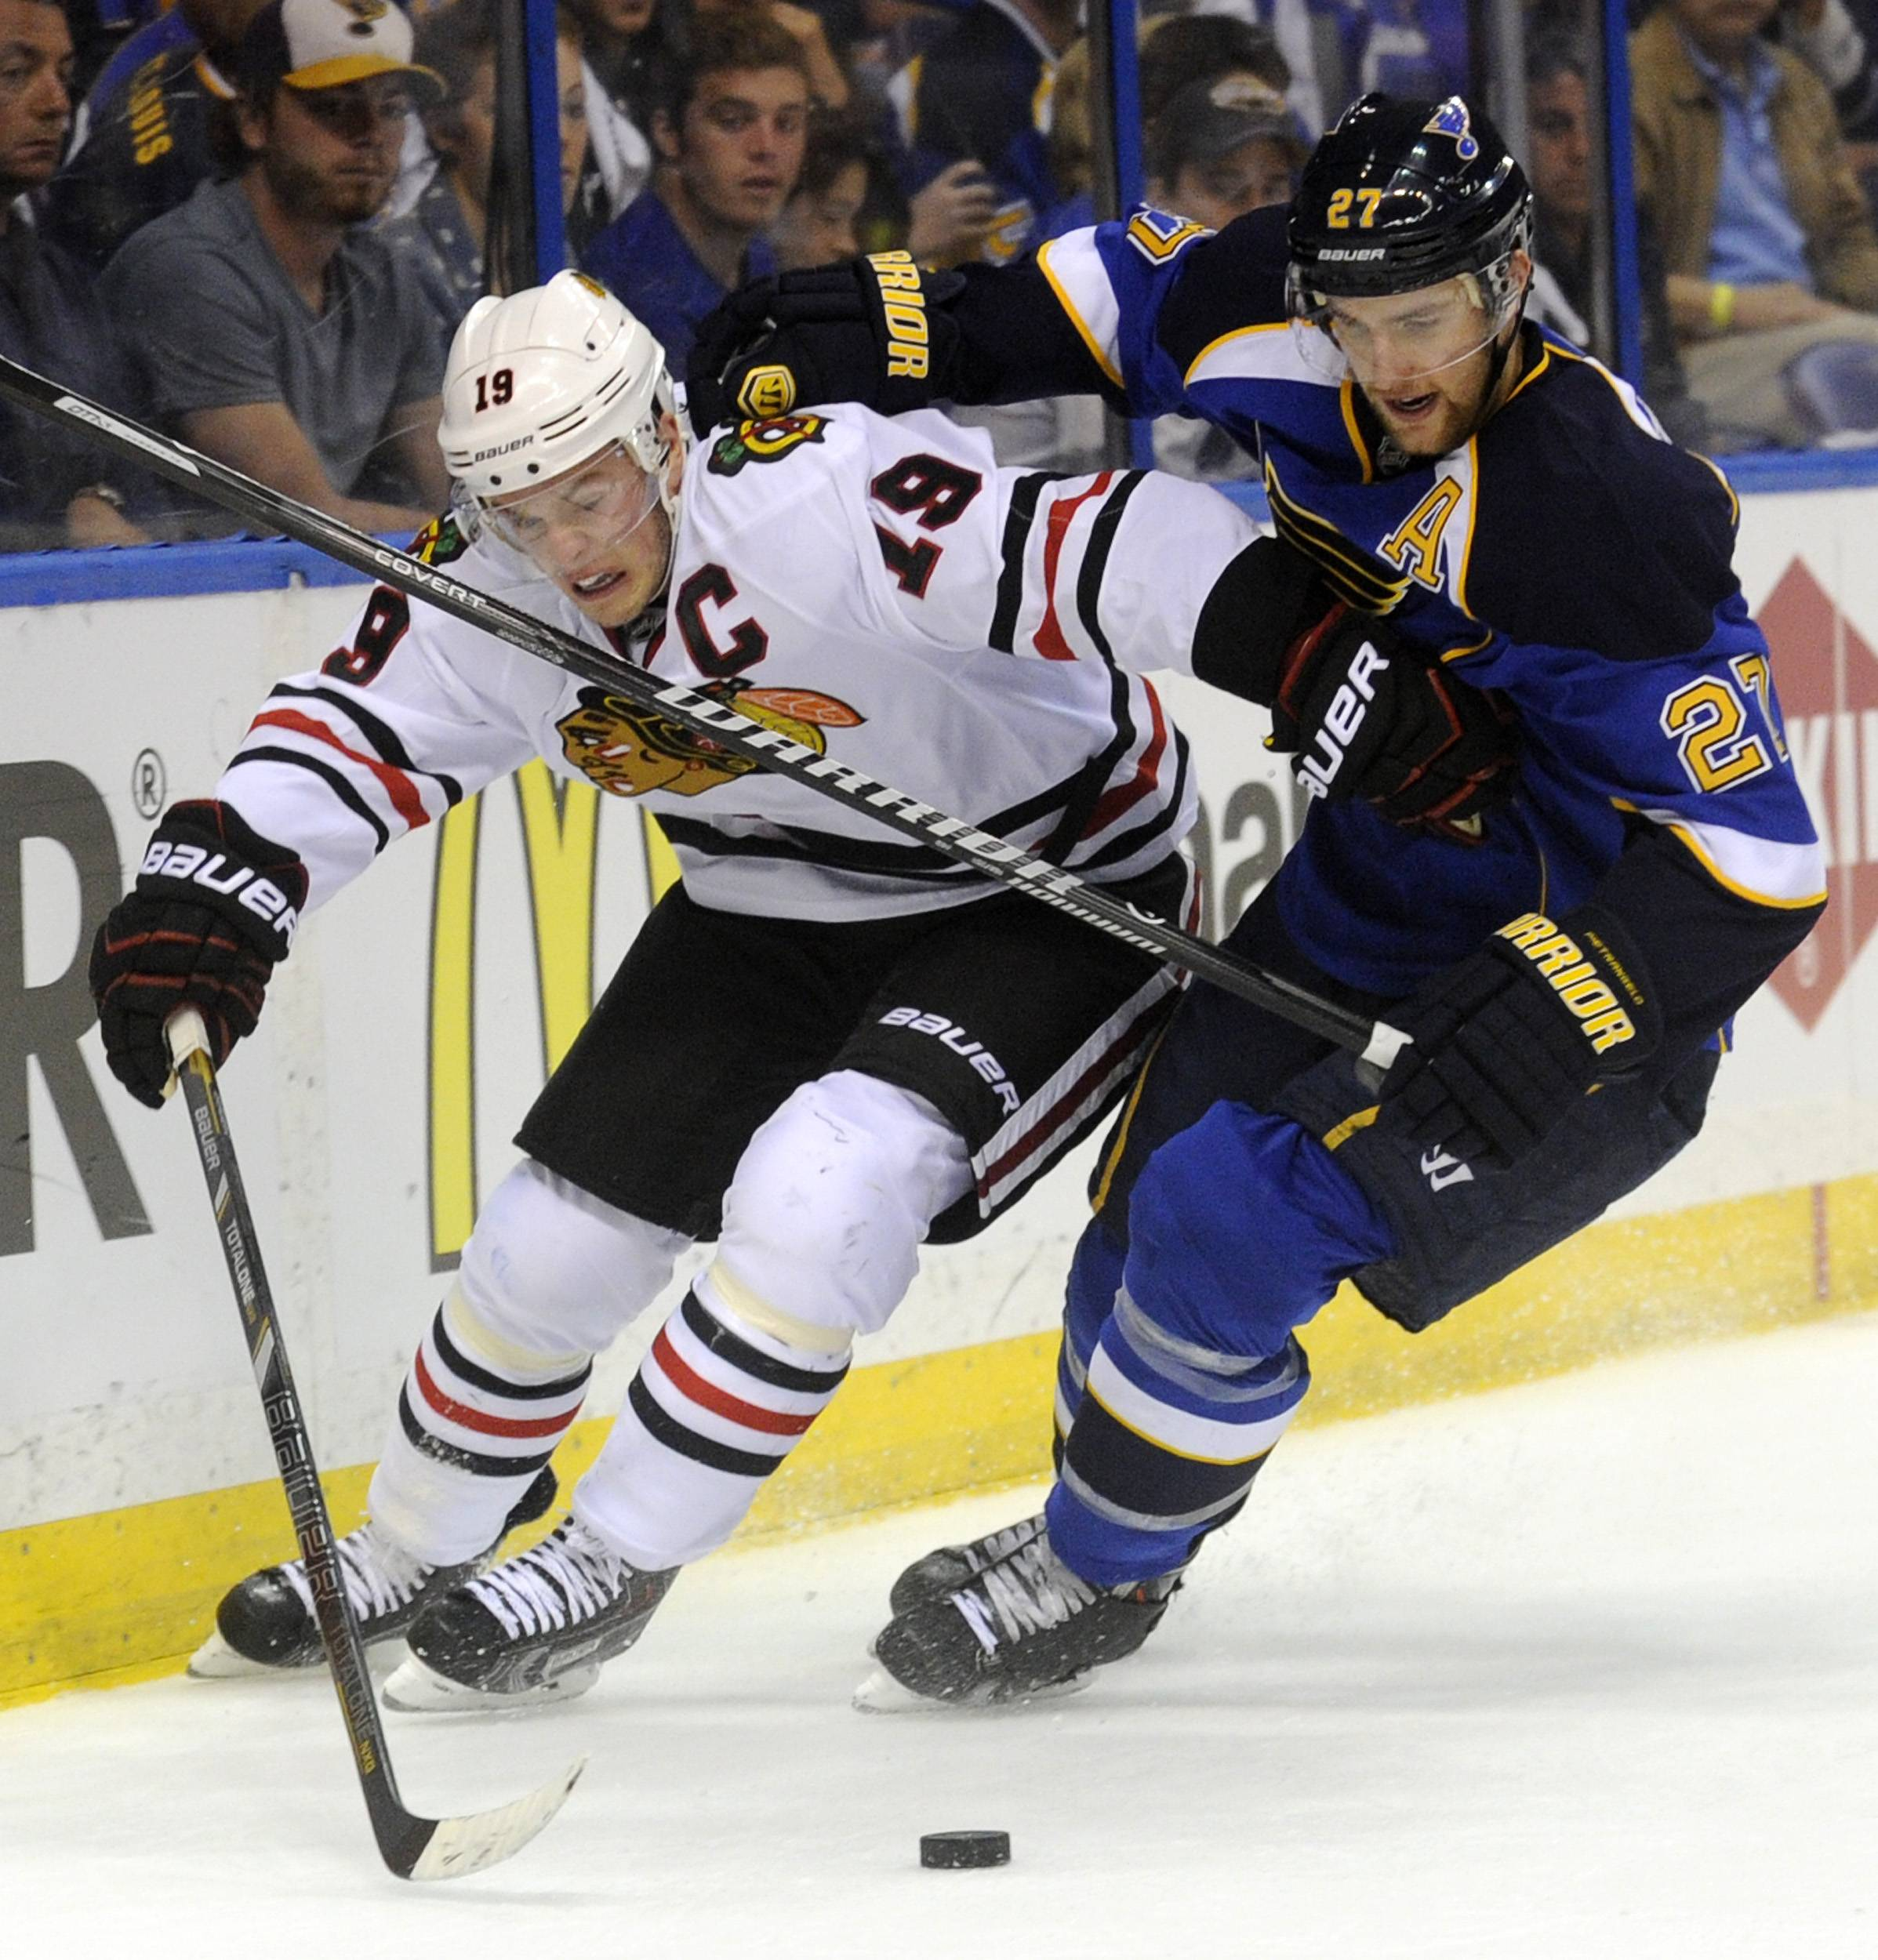 St. Louis has been playing well along the boards and been able to control the tempo of their NHL playoff series with the Blackhawks. Game 3 is at the United Center on Monday.